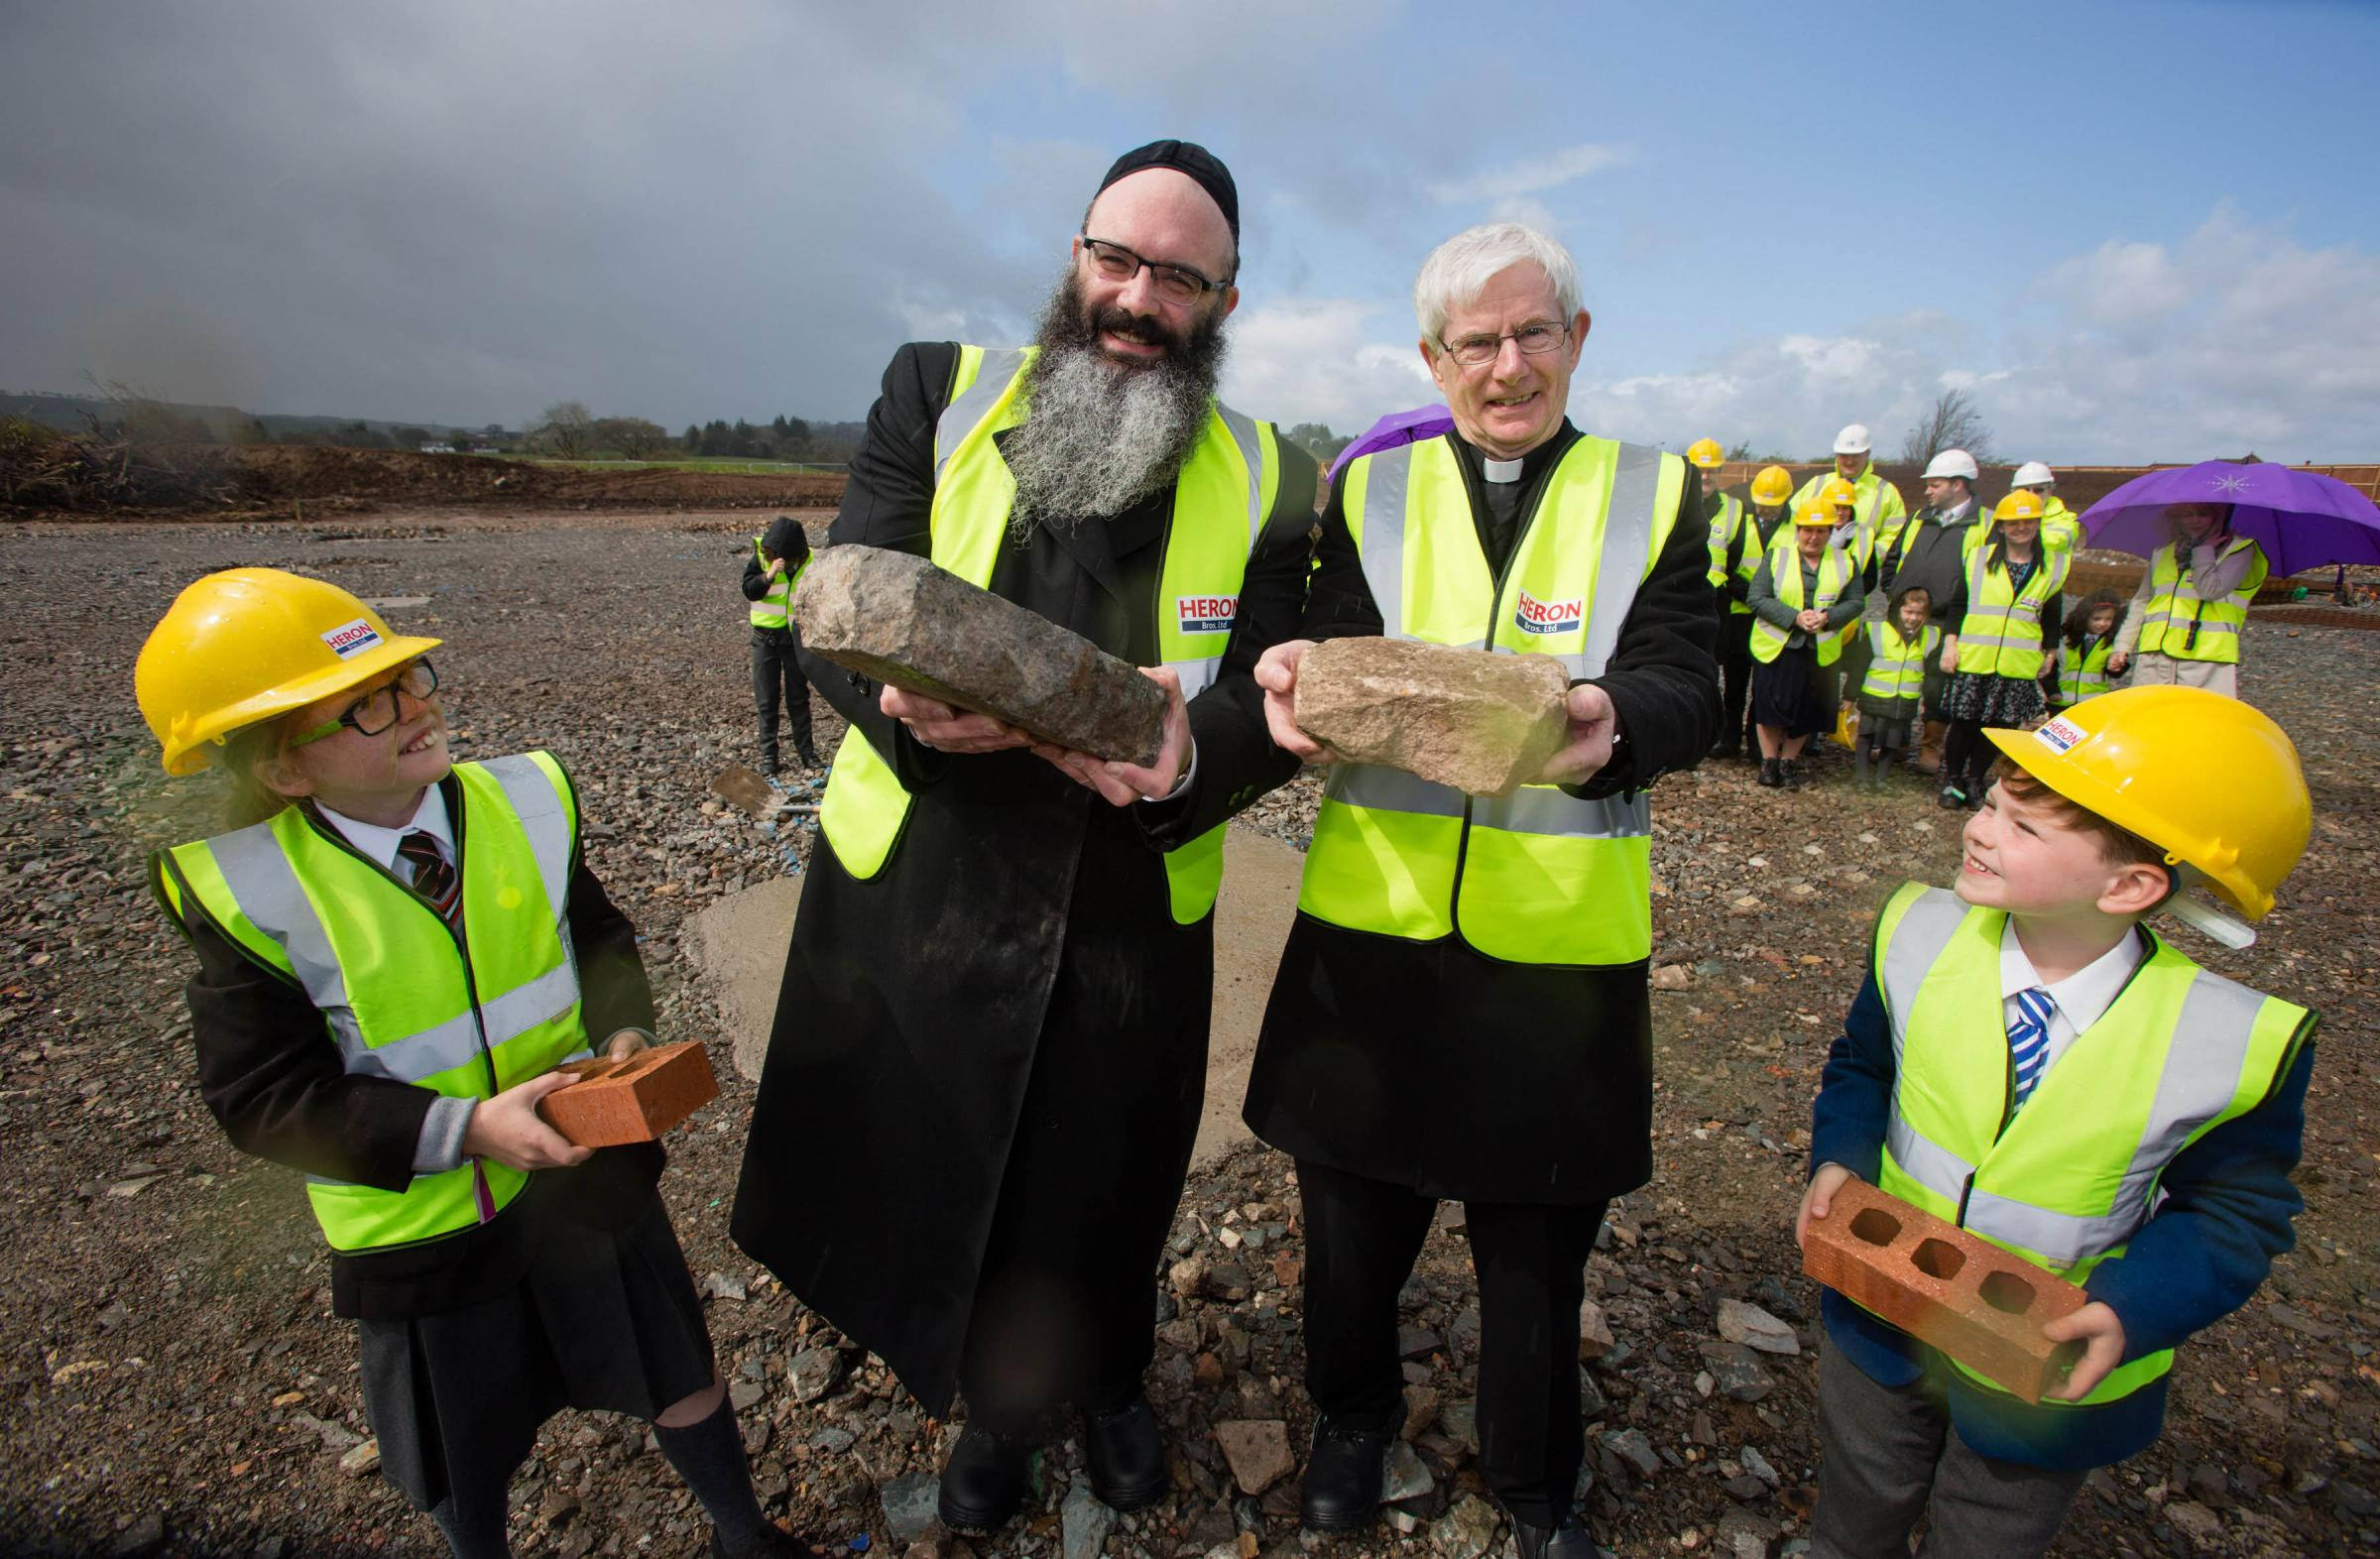 Rabbi Rubin of Giffnock Synagogue and St Cadoc's Parish Priest Monsignor Monaghan holding ceremonial stones laid on the site of a new joint faith schools campus being built in Newton Mearns